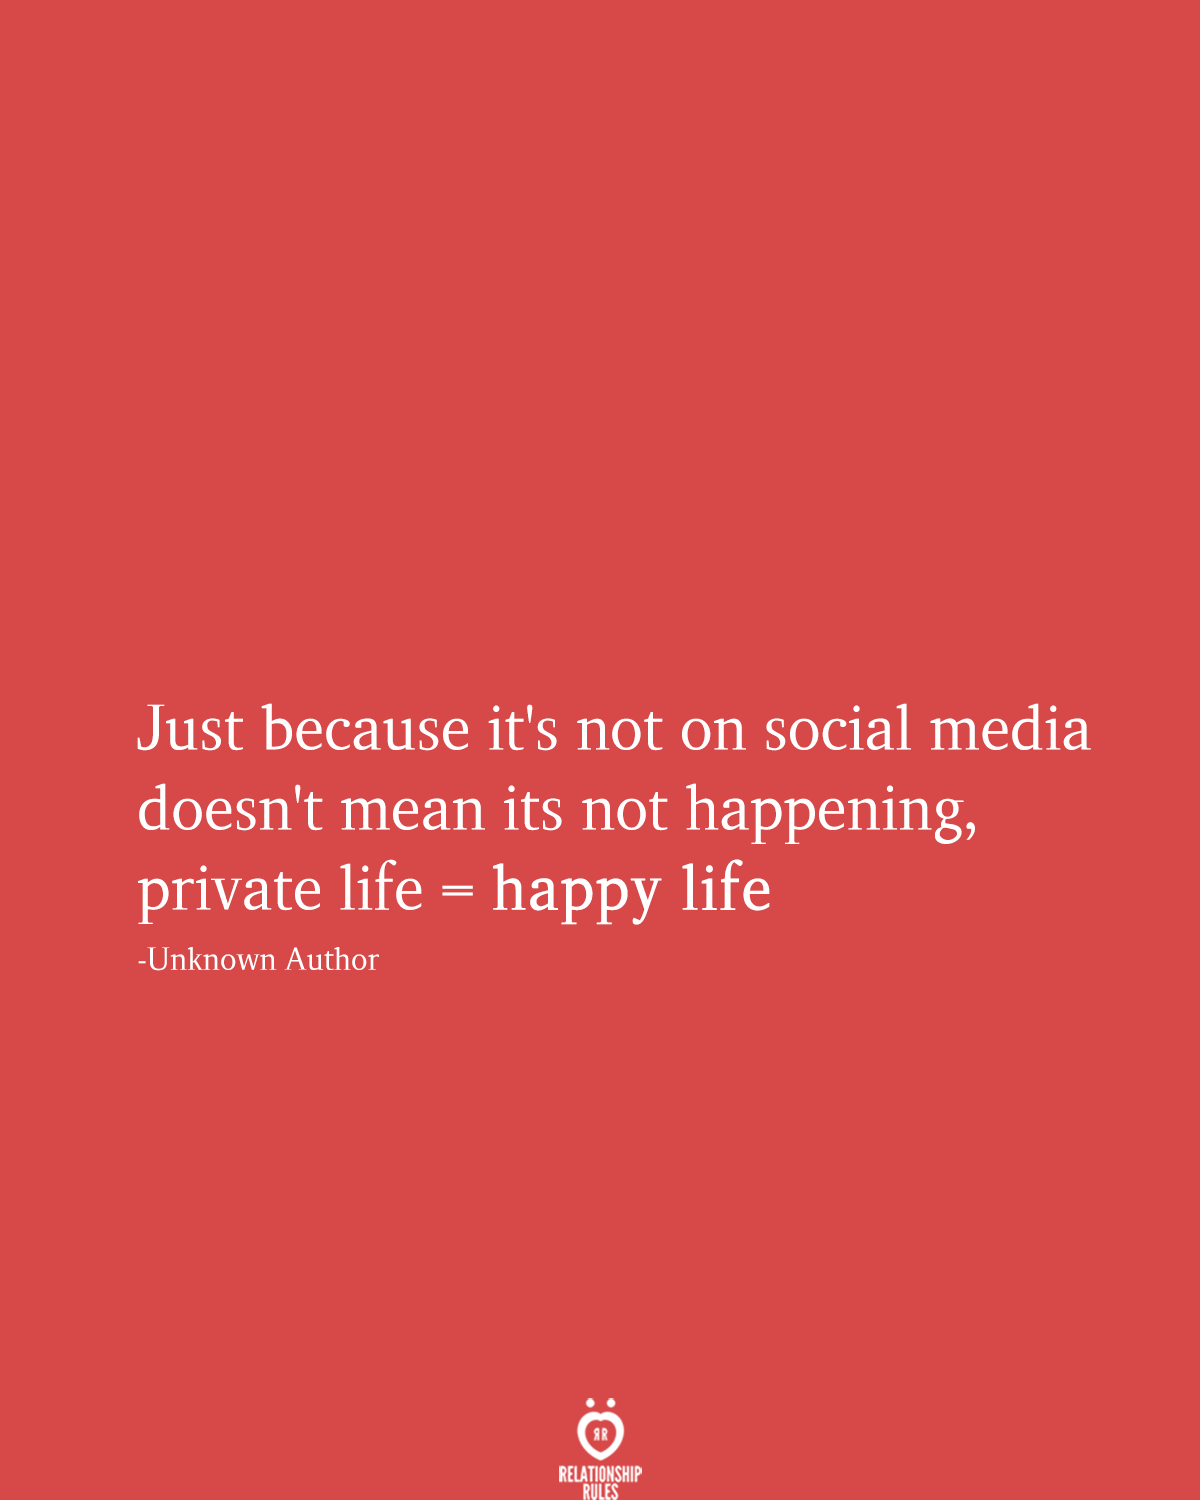 Just Because Its Not On Social Media Doesnt Mean Its Not Happening